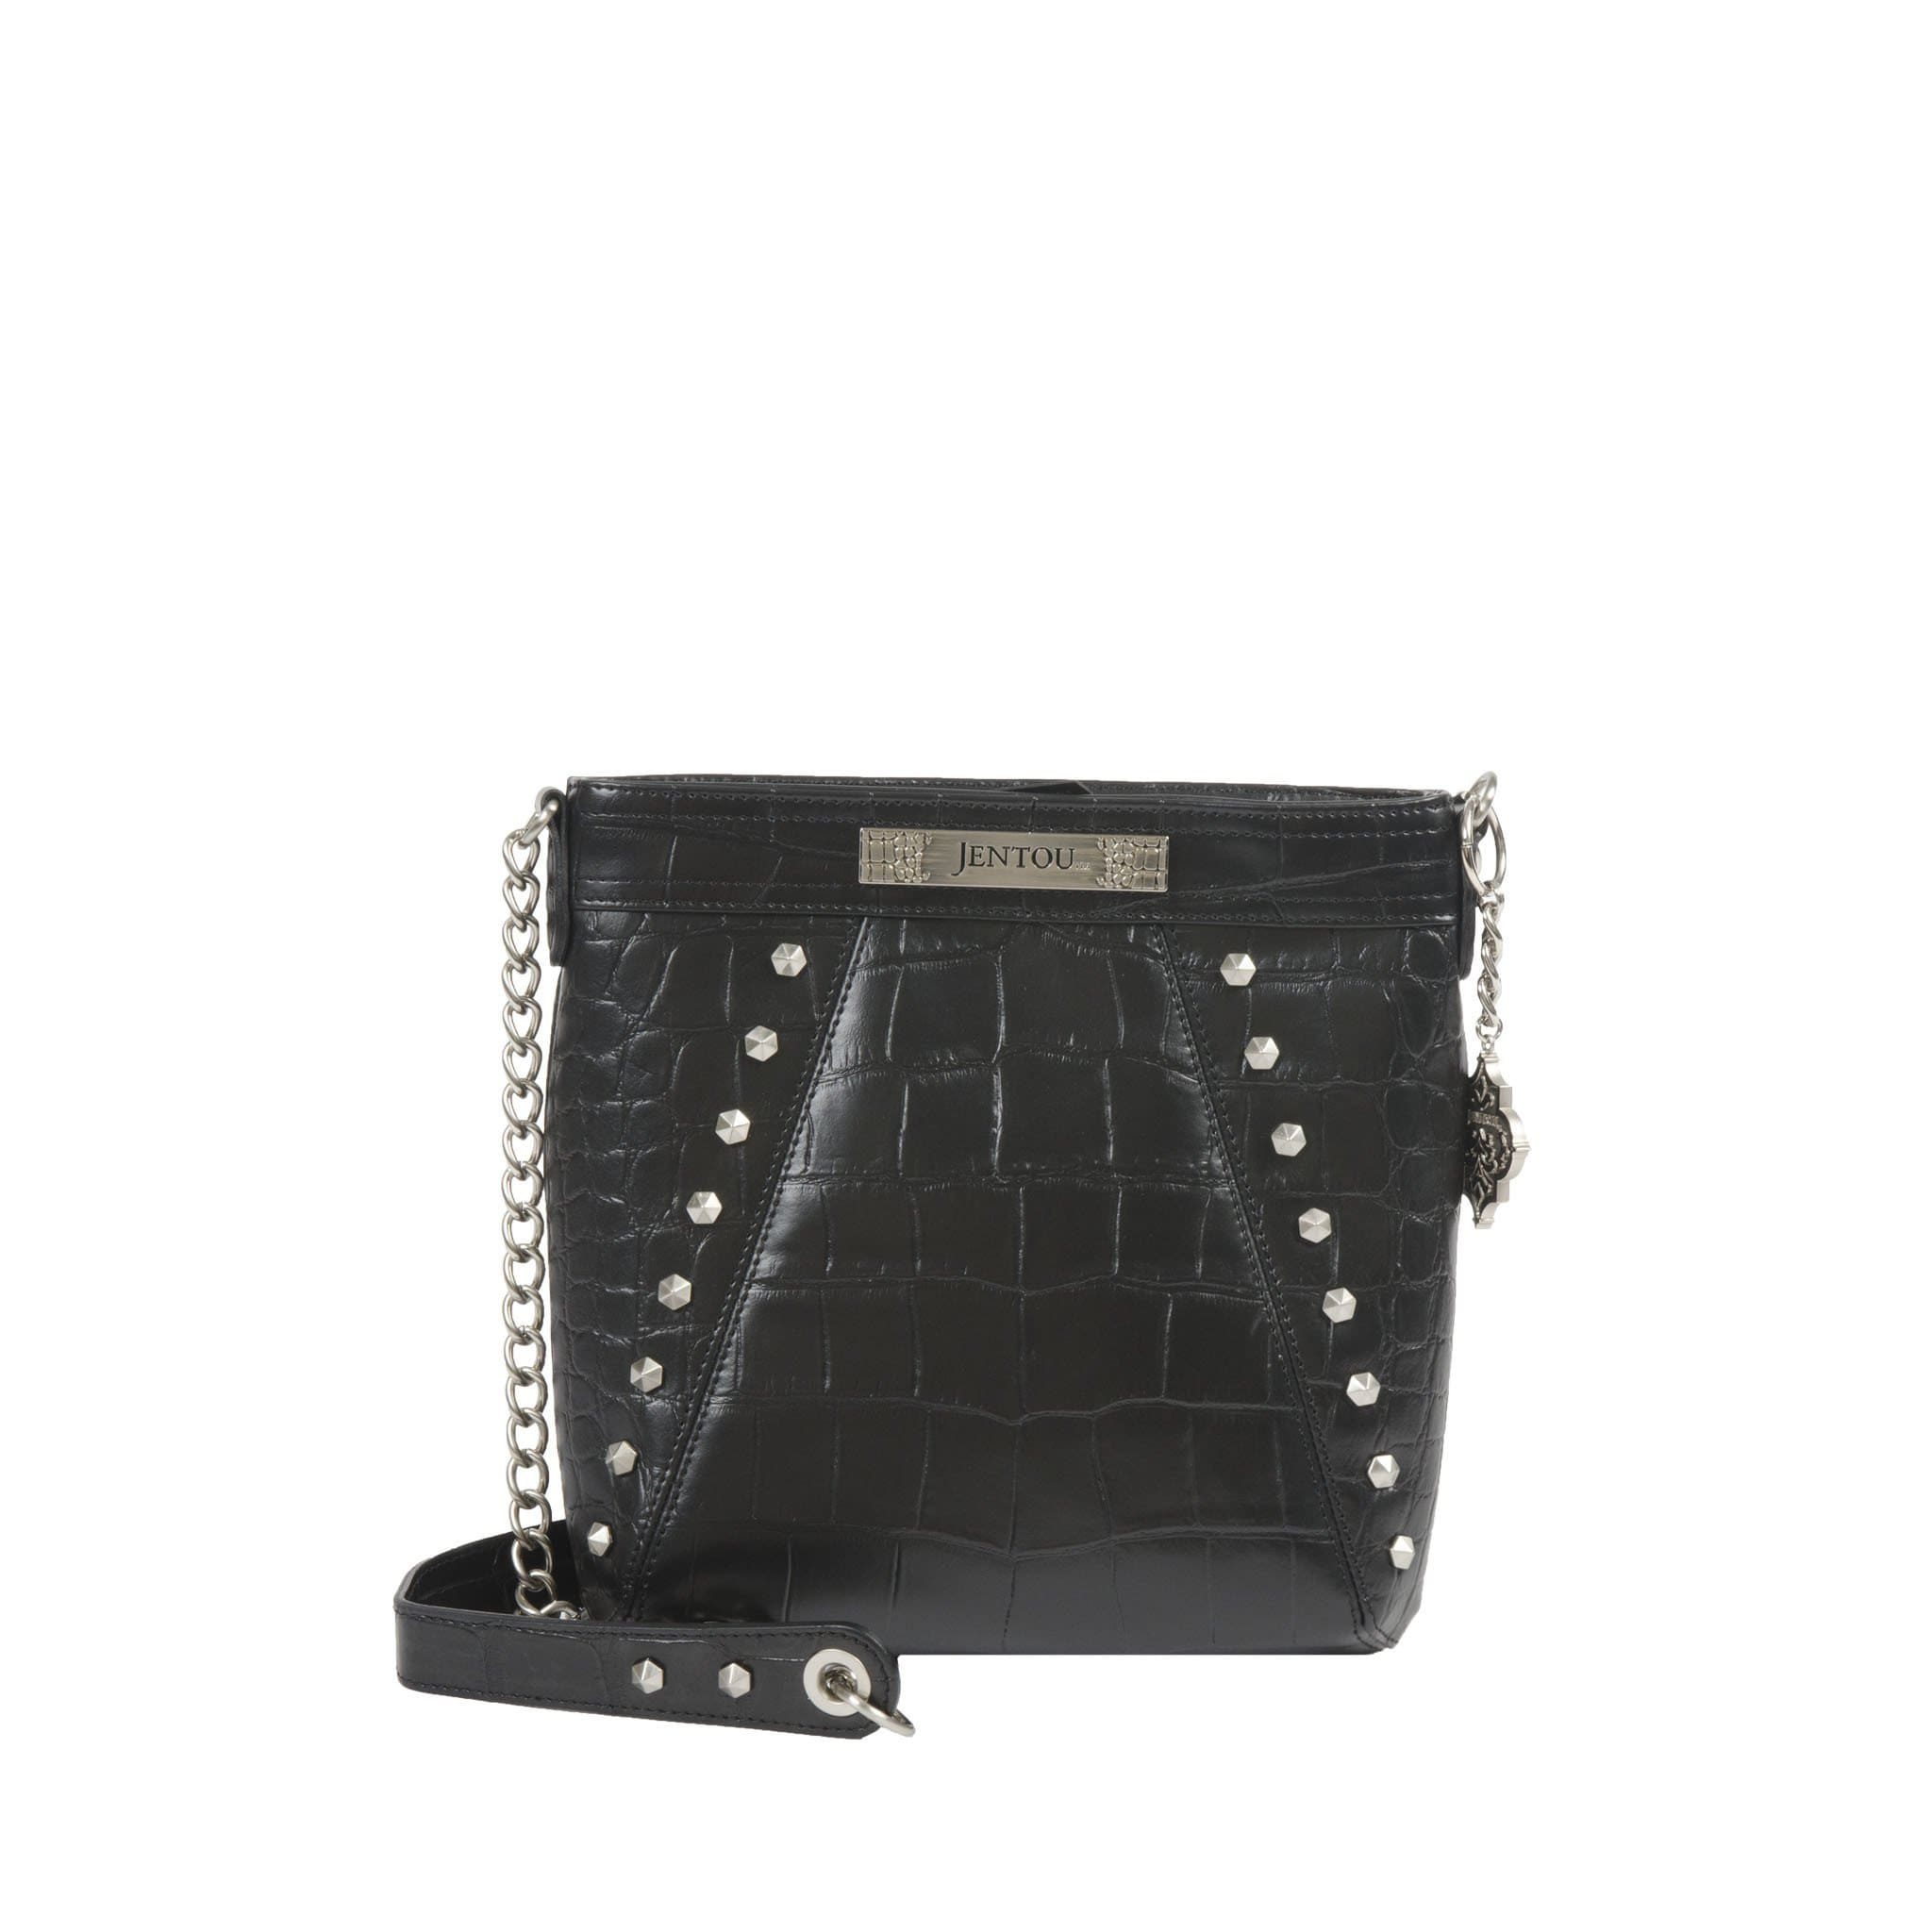 Black croc leather crossbody with chain strap and studs